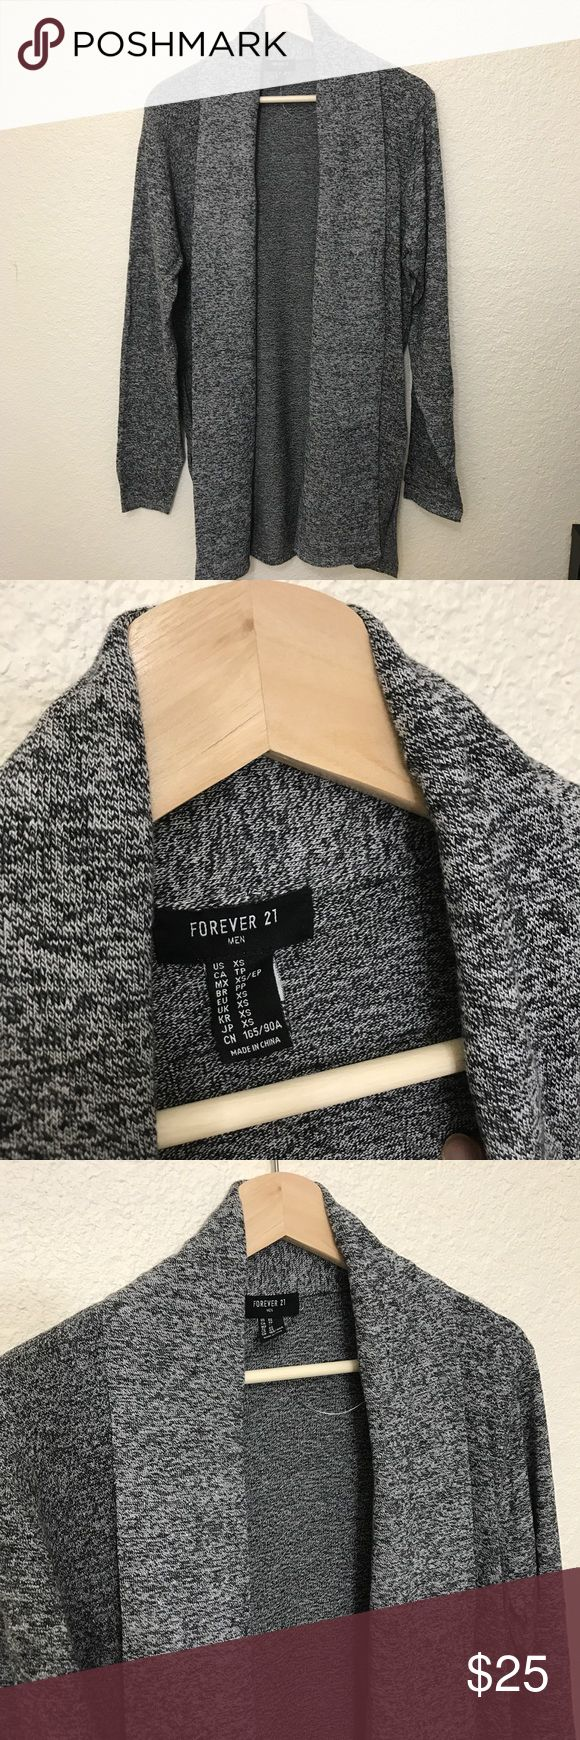 21Men Long Gray Cardigan XS Long gray cardigan from 21 Men. Brand new in excellent condition. 21men Sweaters Cardigan